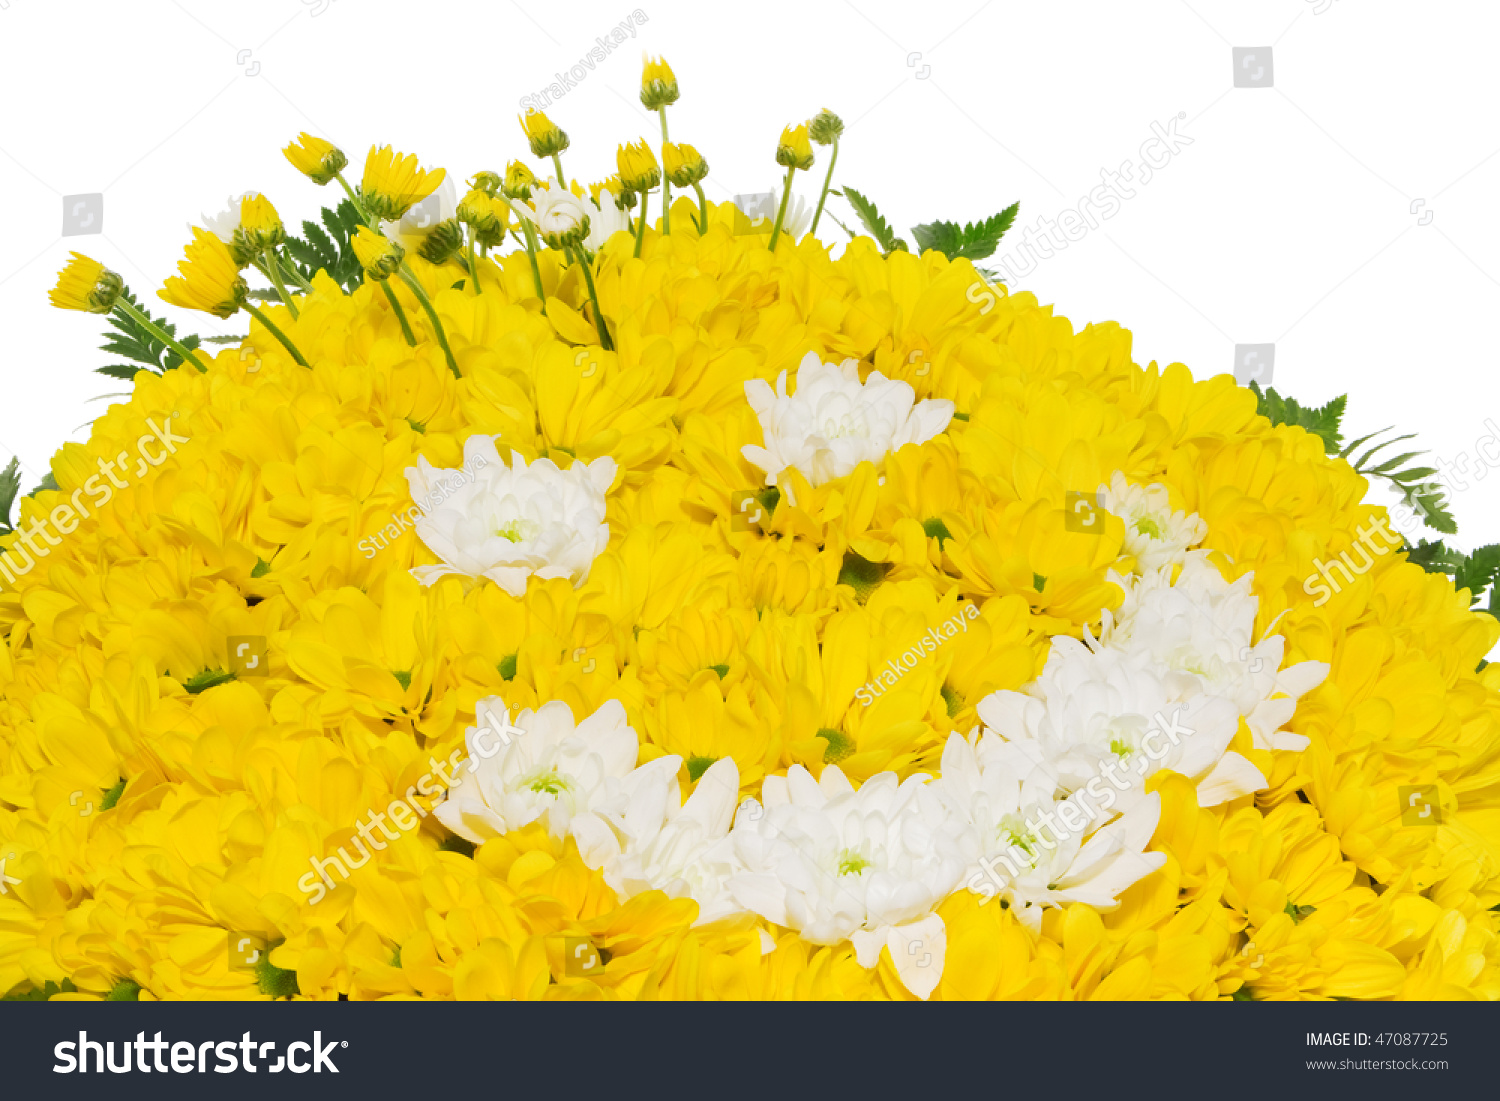 Flower yellow smiley face stock photo royalty free 47087725 flower yellow smiley face izmirmasajfo